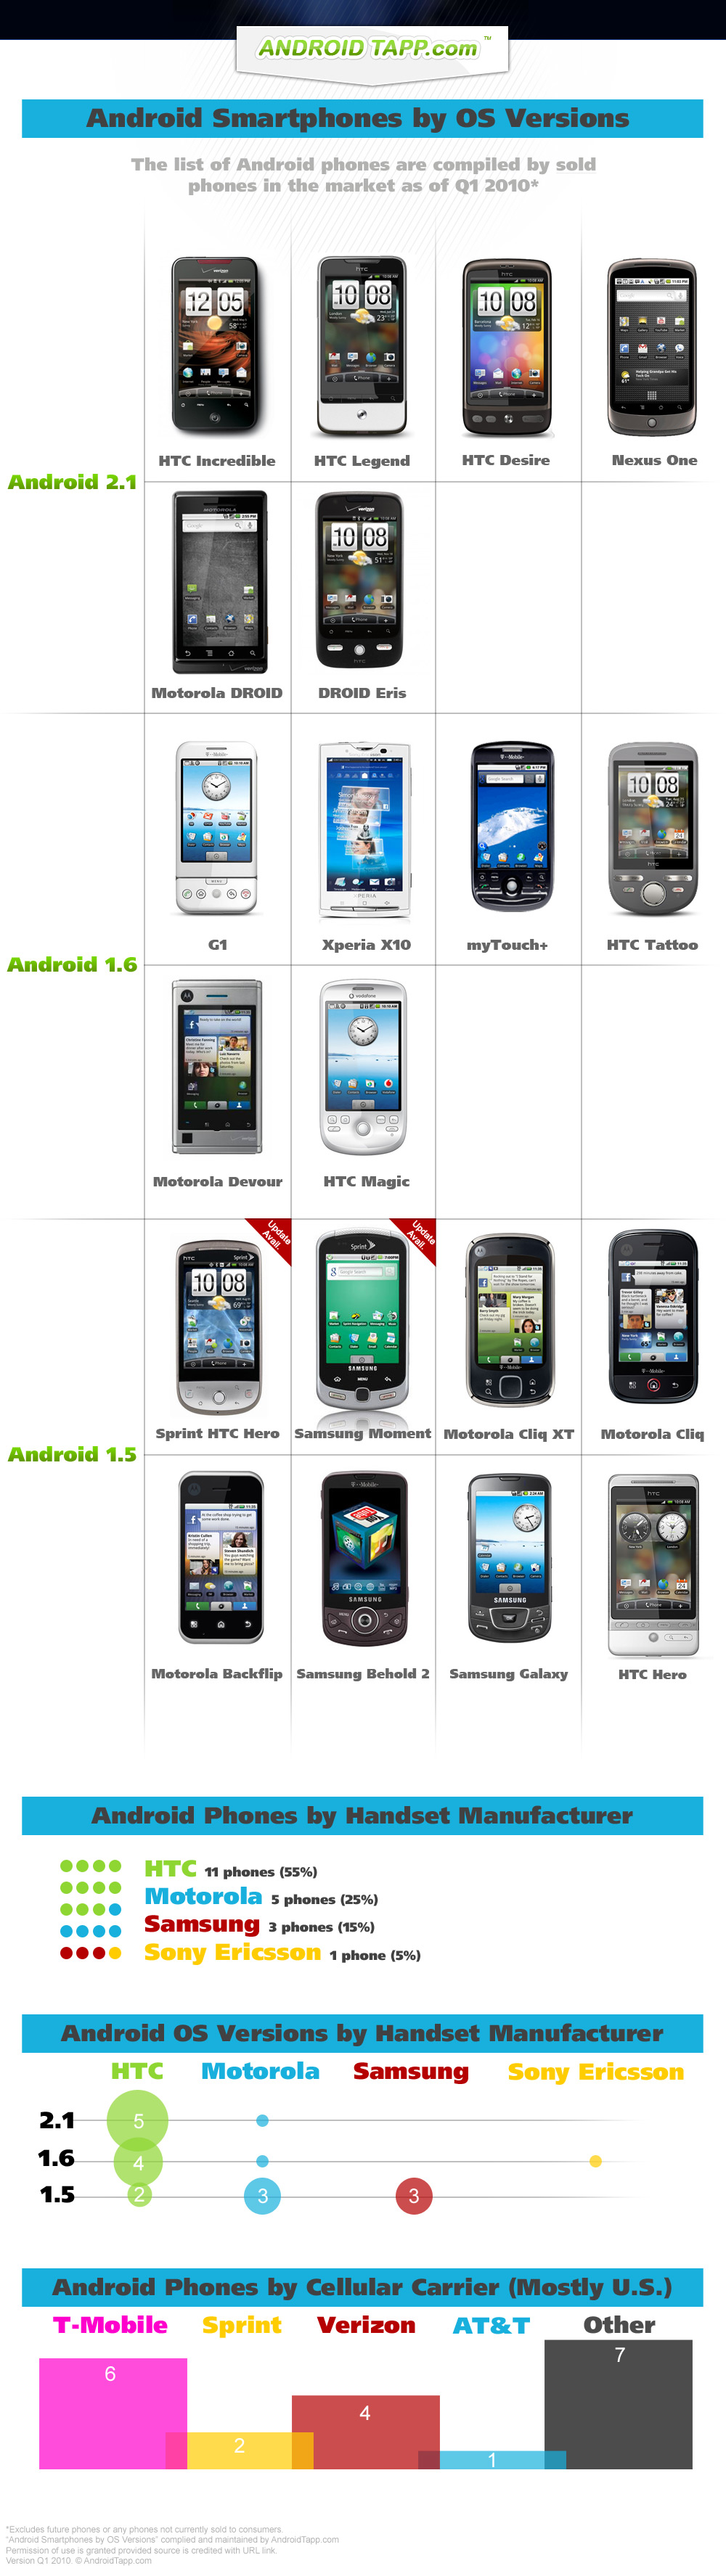 Android Smartphones by OS Versions by AndroidTapp.com